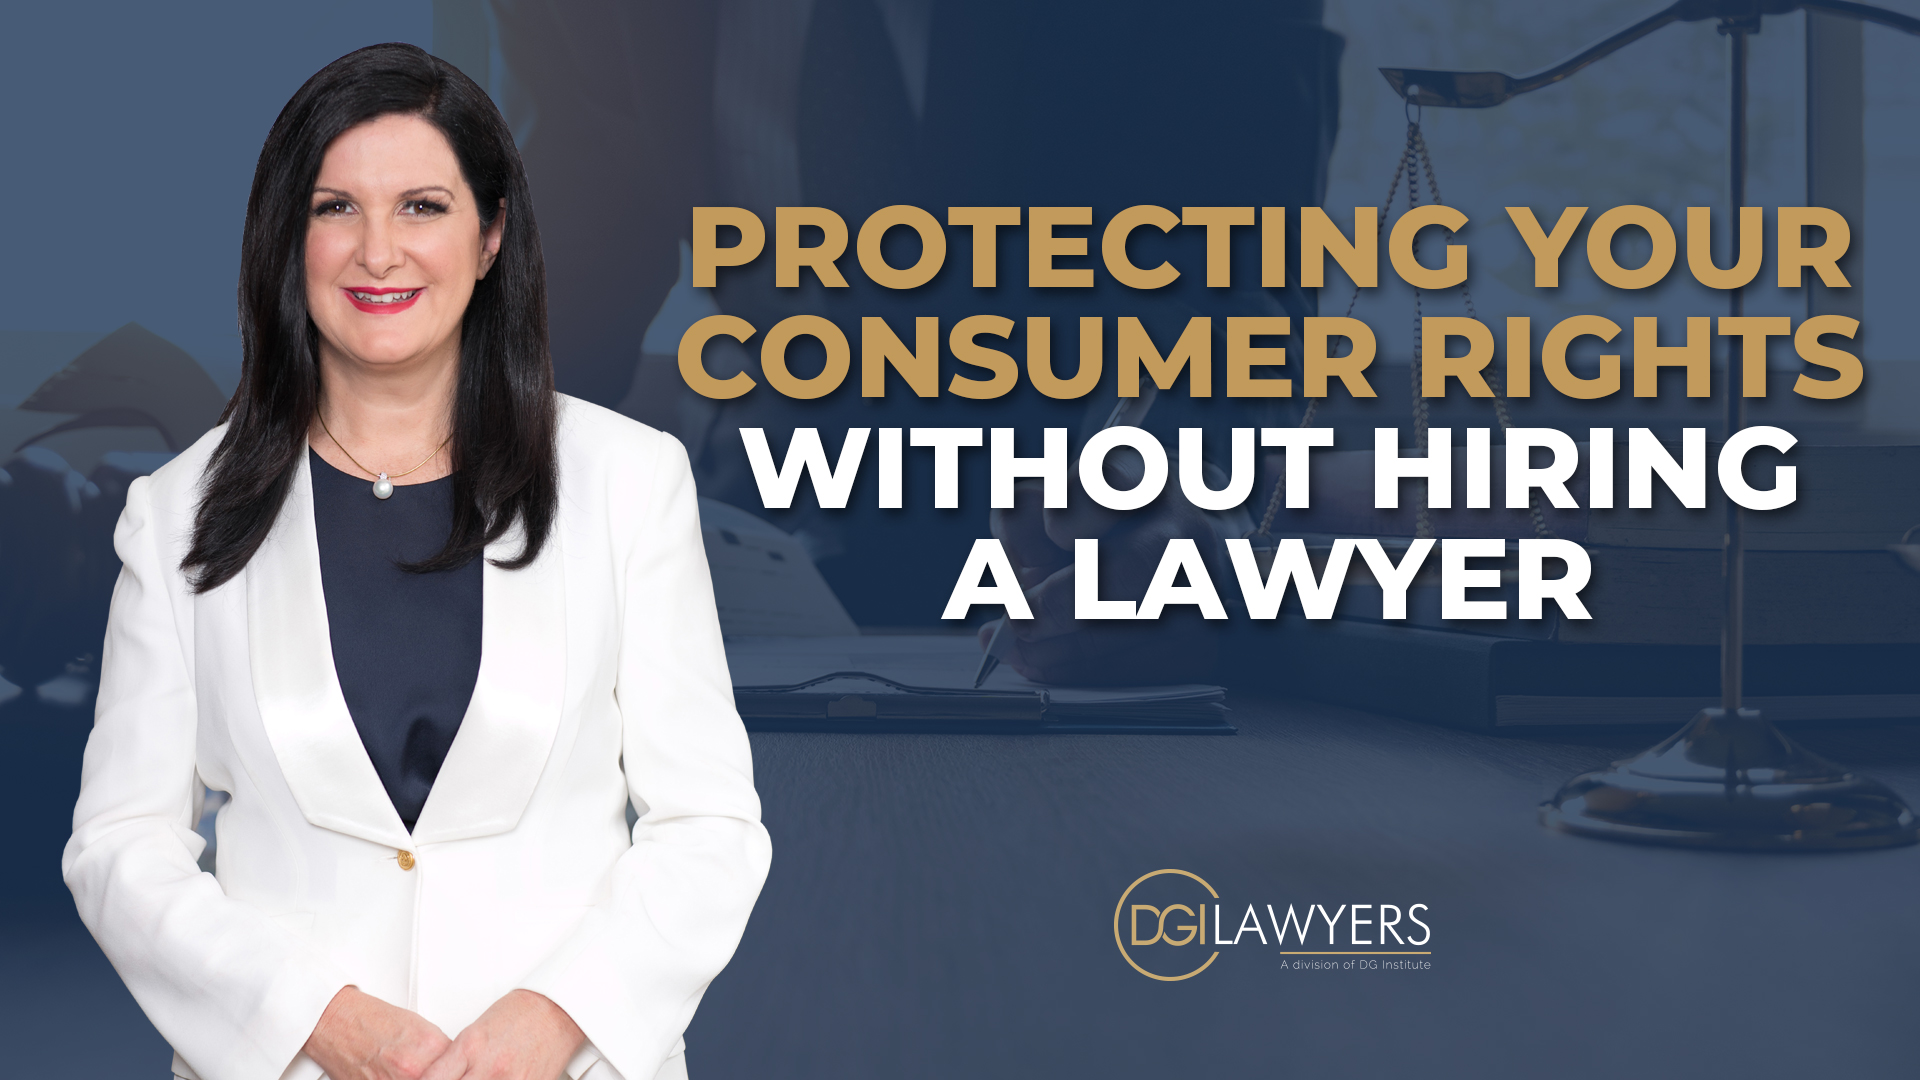 Protecting Your Consumer Rights Without Hiring A Lawyer Dgi Lawyers